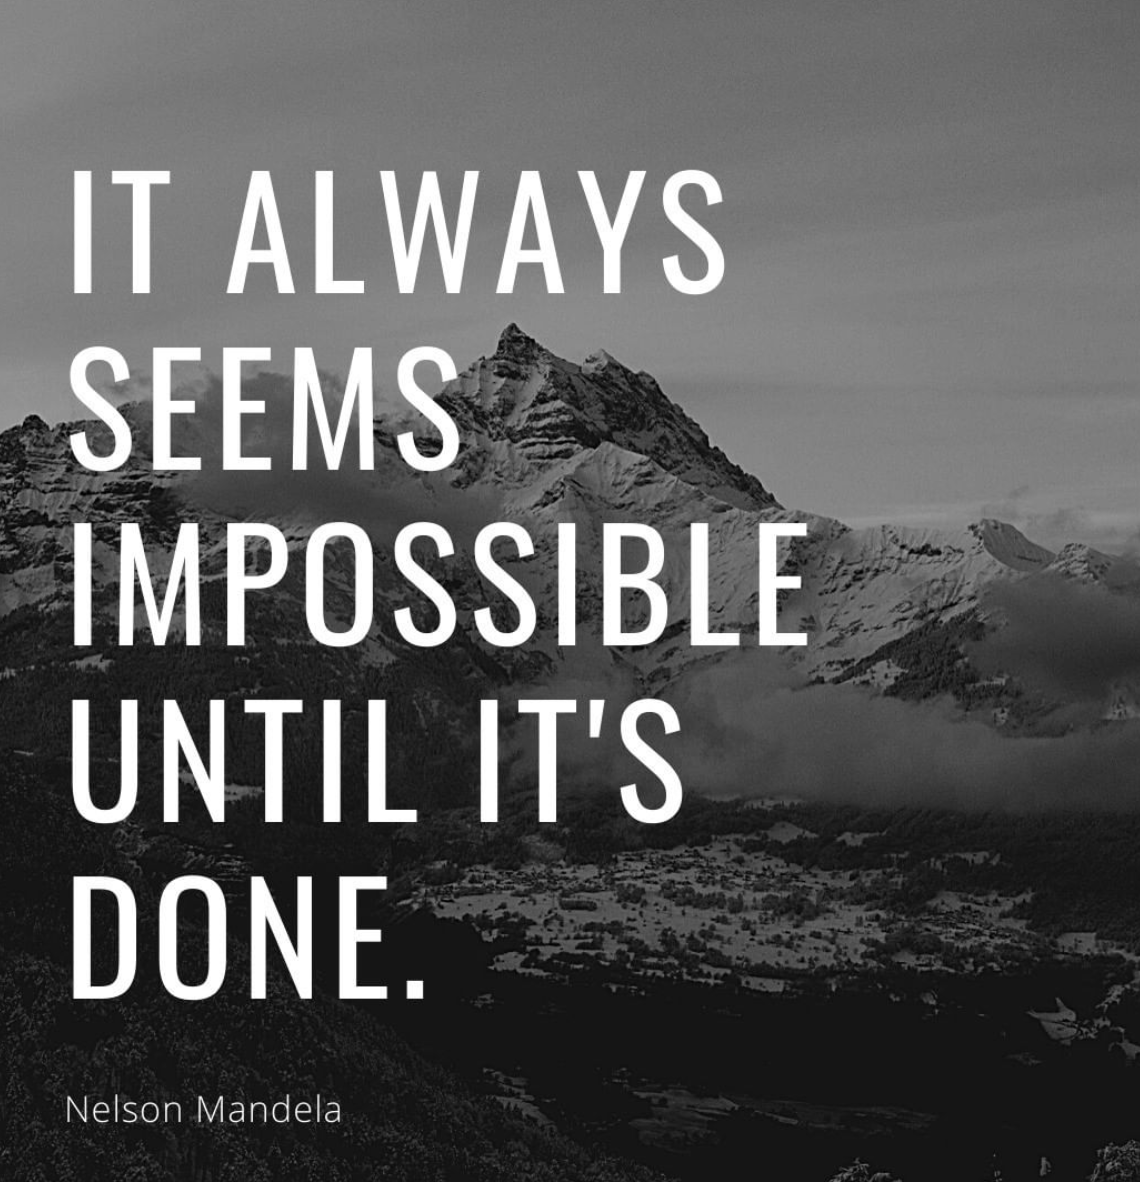 [Image] It always seems impossible until it's done.